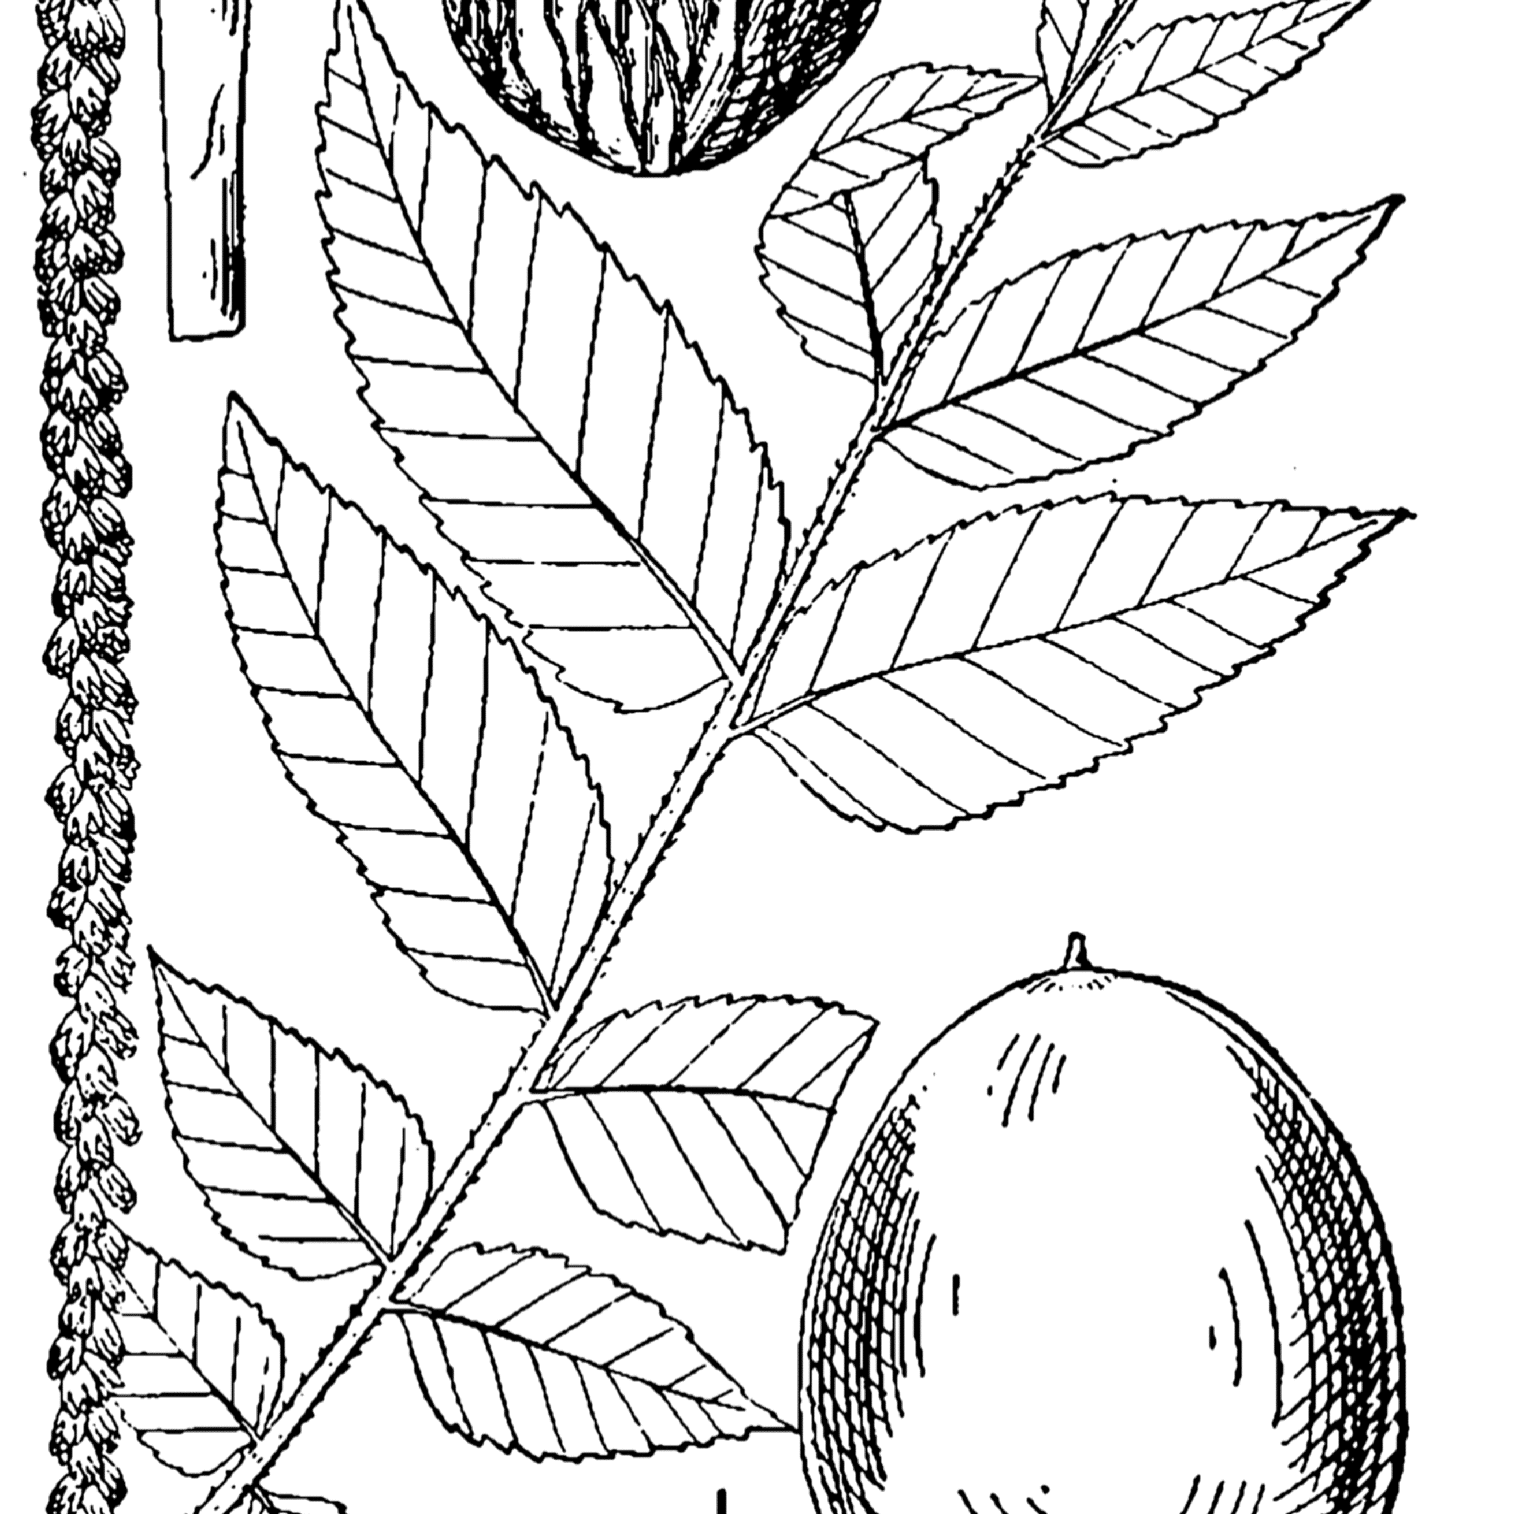 Black Walnut Is a Common North American Tree